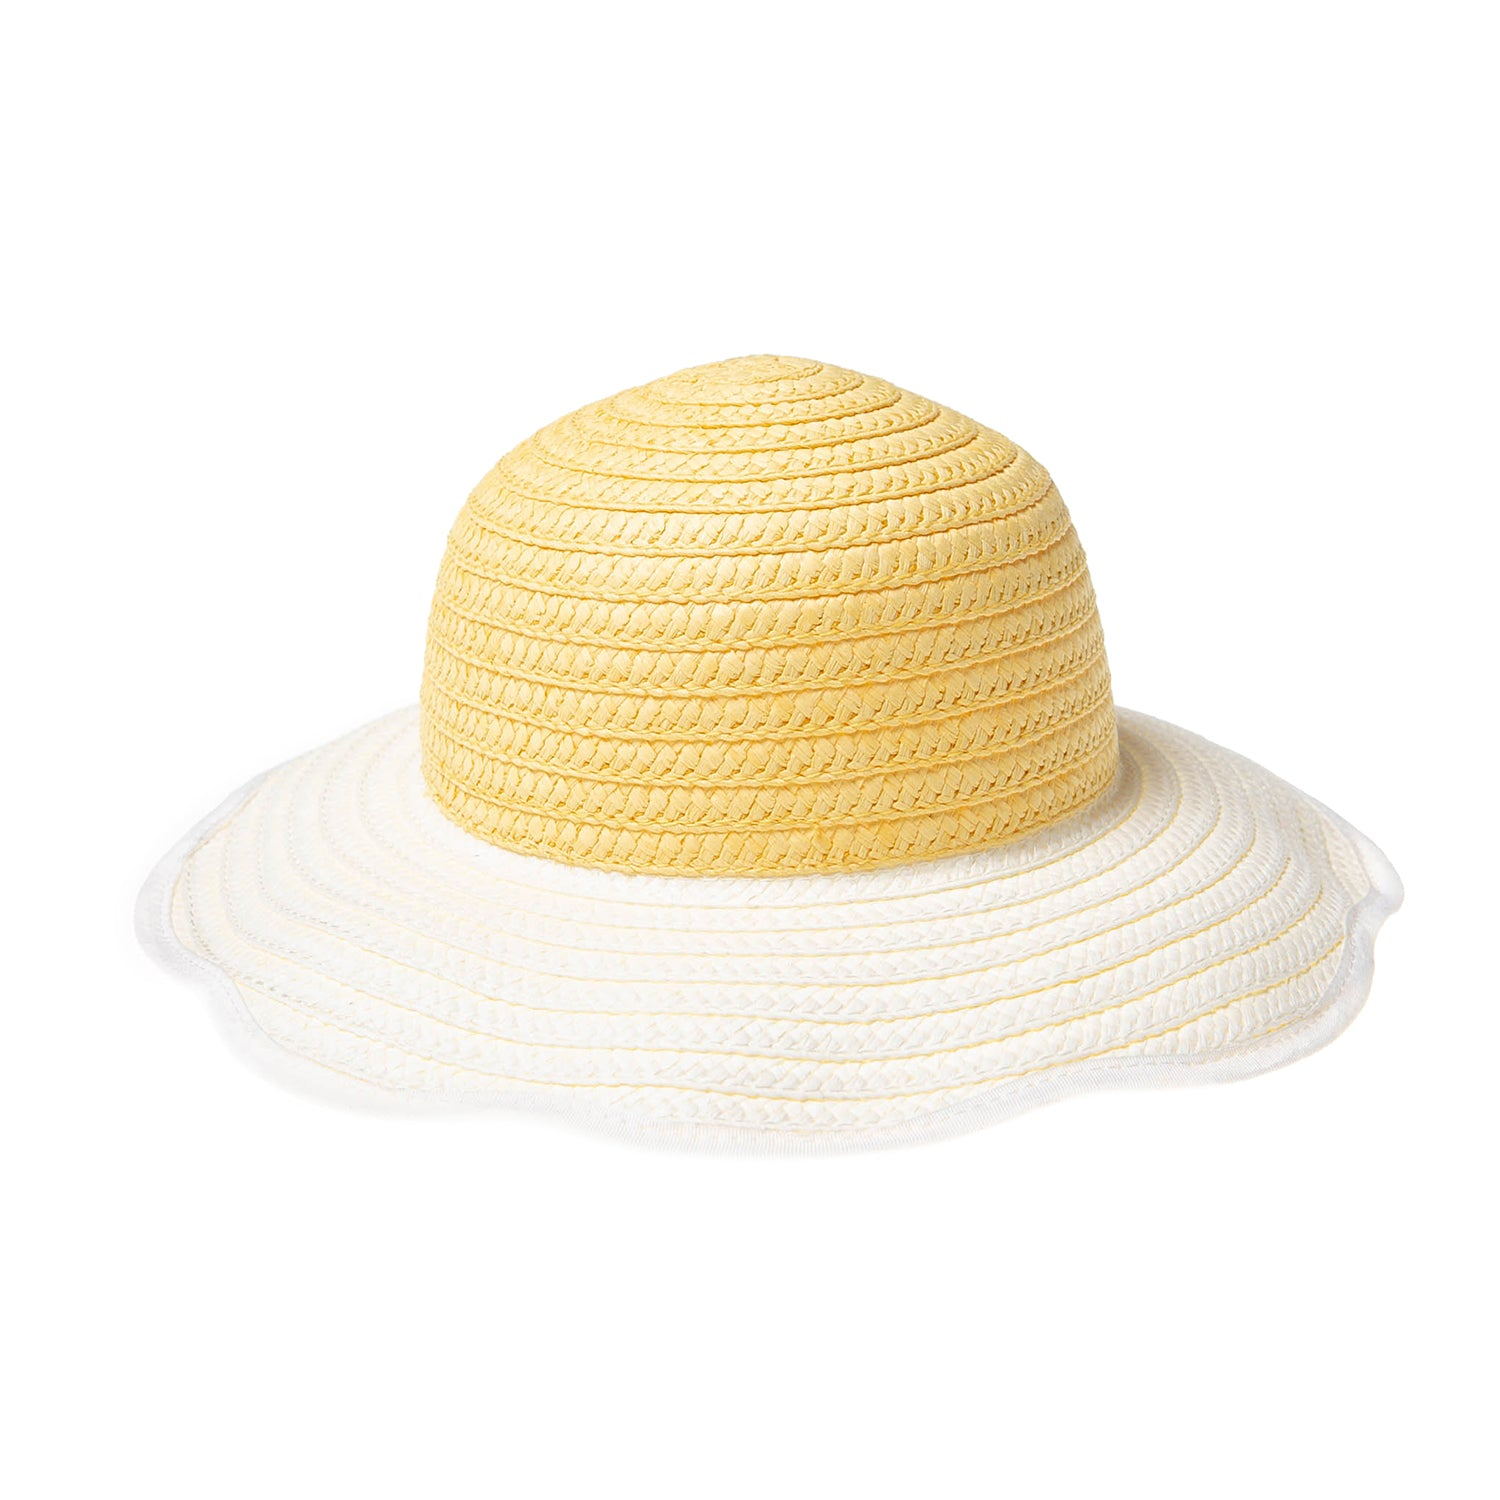 Daisy Sun Hat 7-10 Years